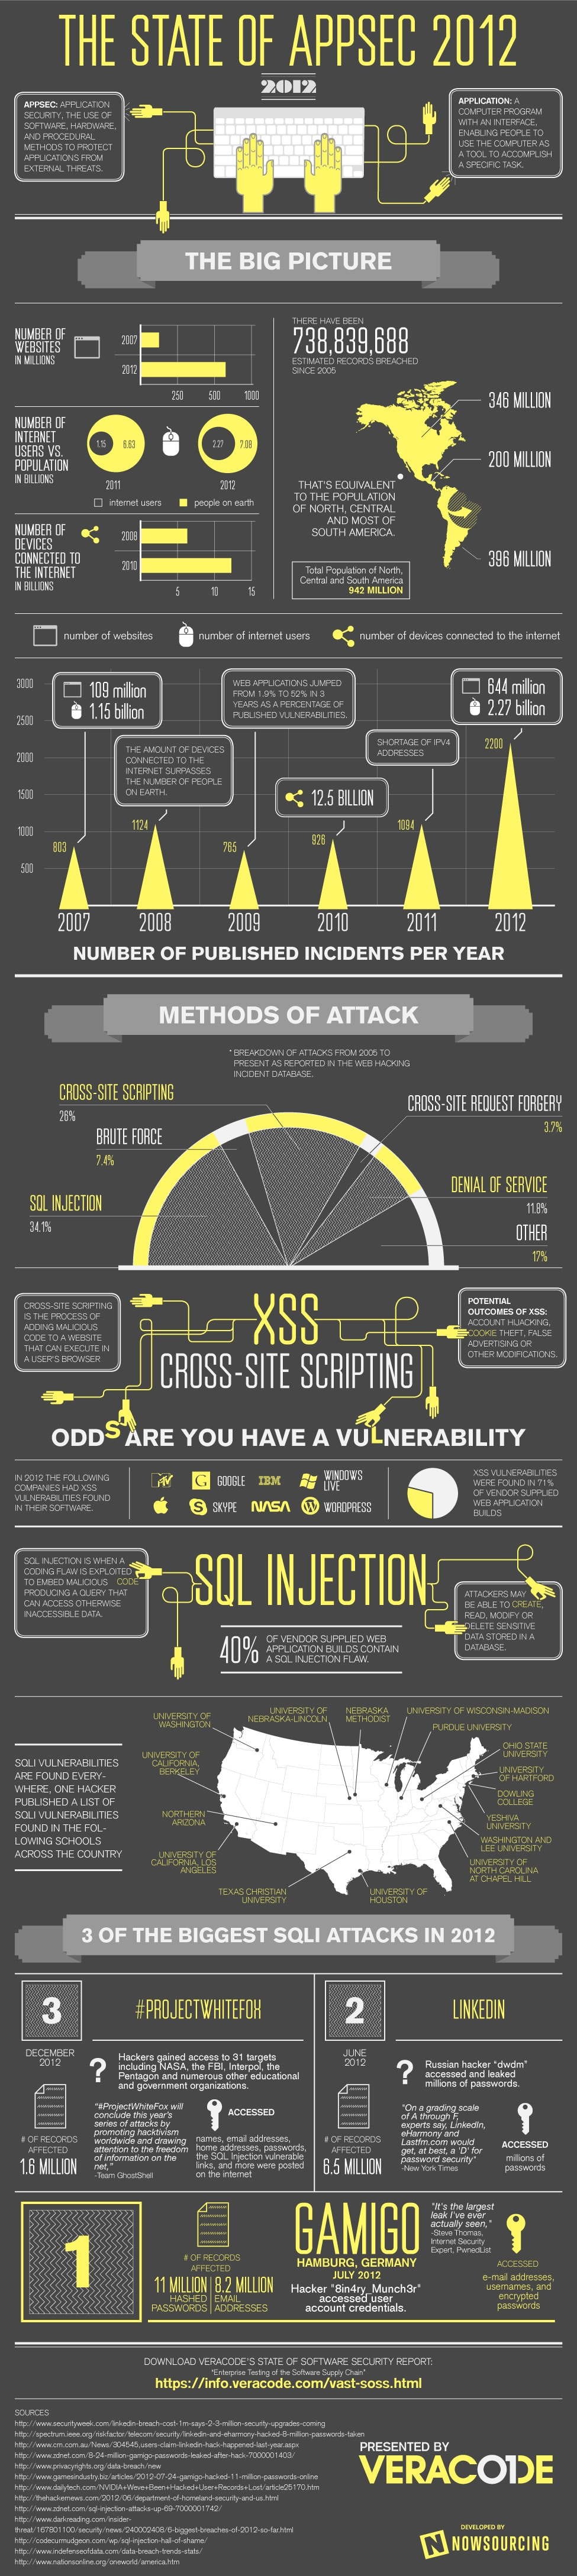 The State Of App Security At The End Of 2012 [Infographic]